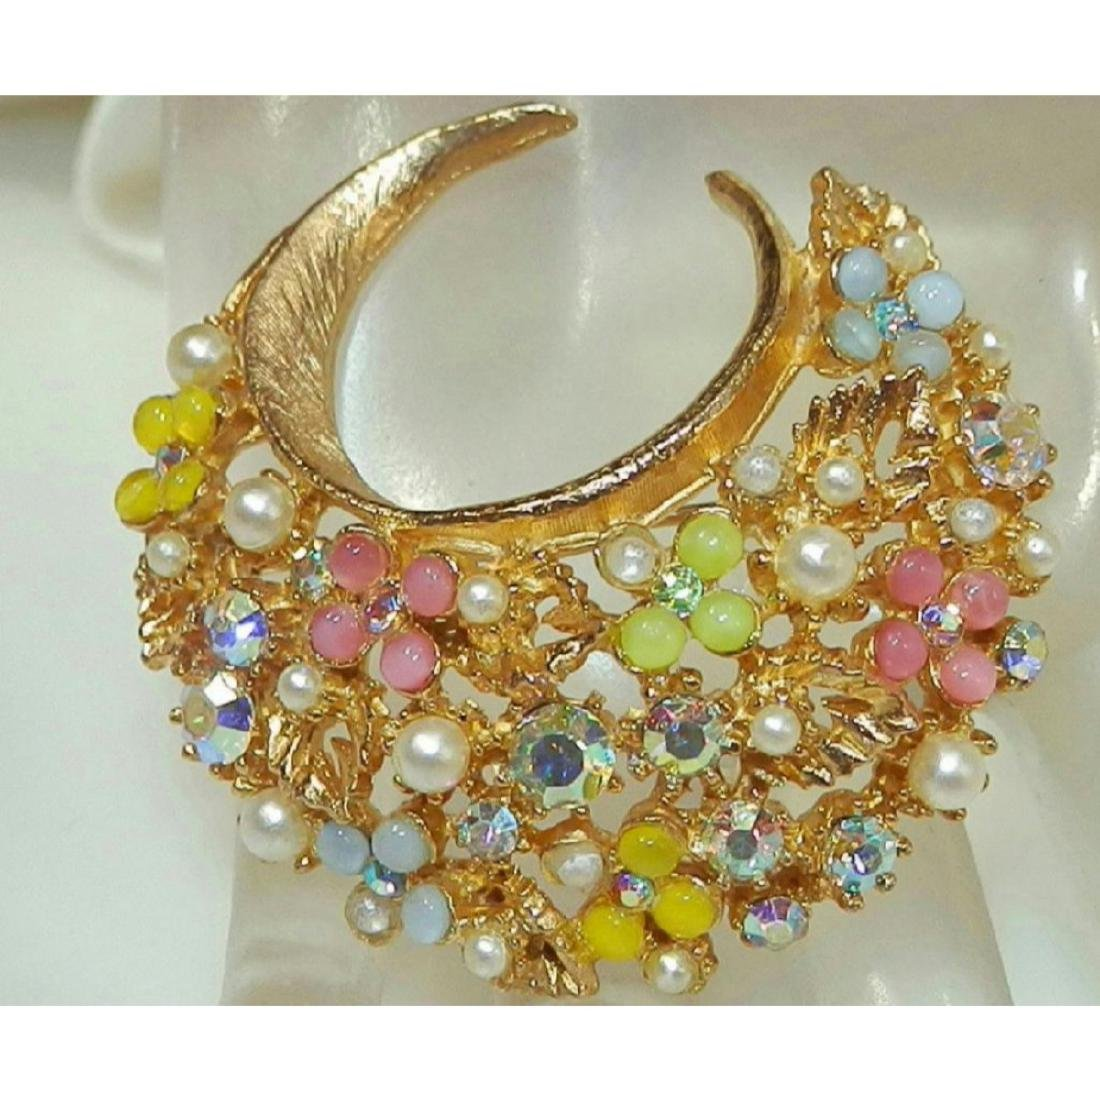 Vintage Signed ART Rhinestone Thermoset Faux Pearl - 3